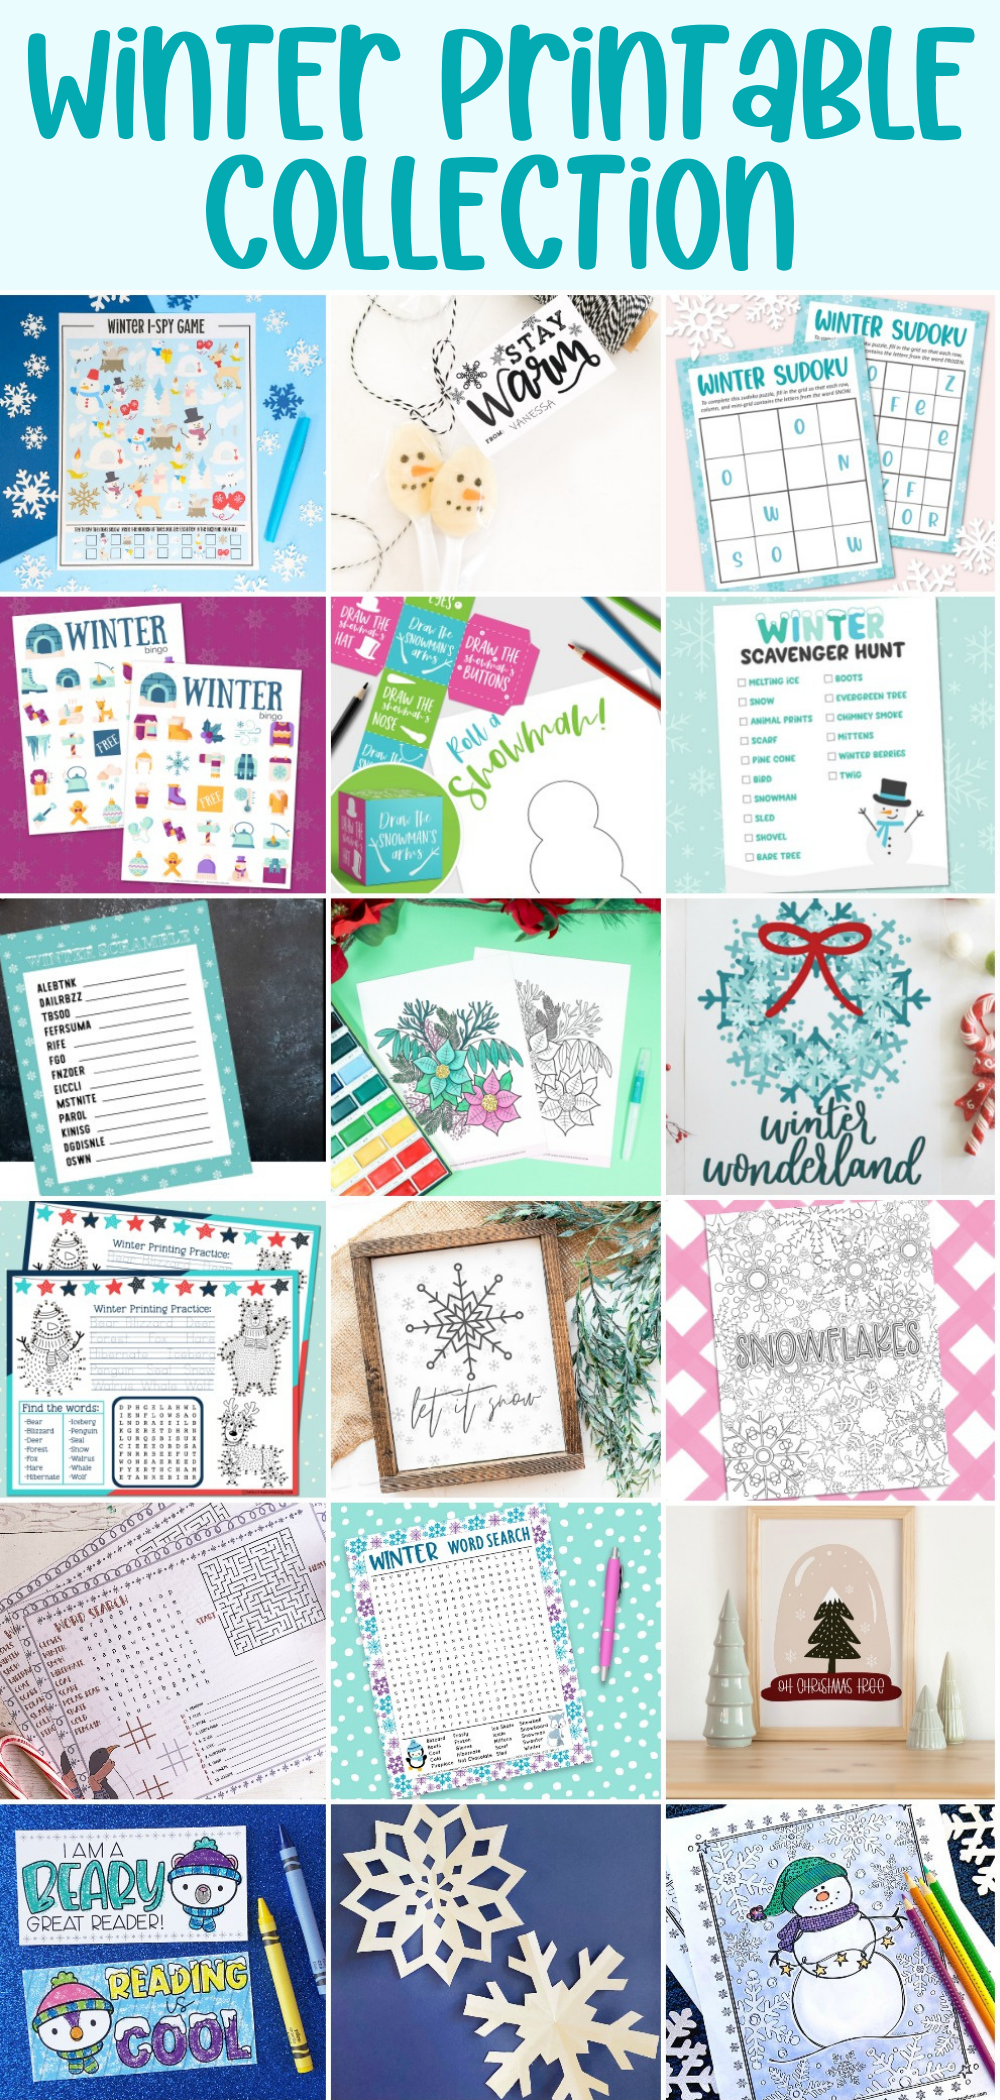 https://www.happygoluckyblog.com/wp-content/uploads/2020/12/Winter-Printable-Collection-1.png